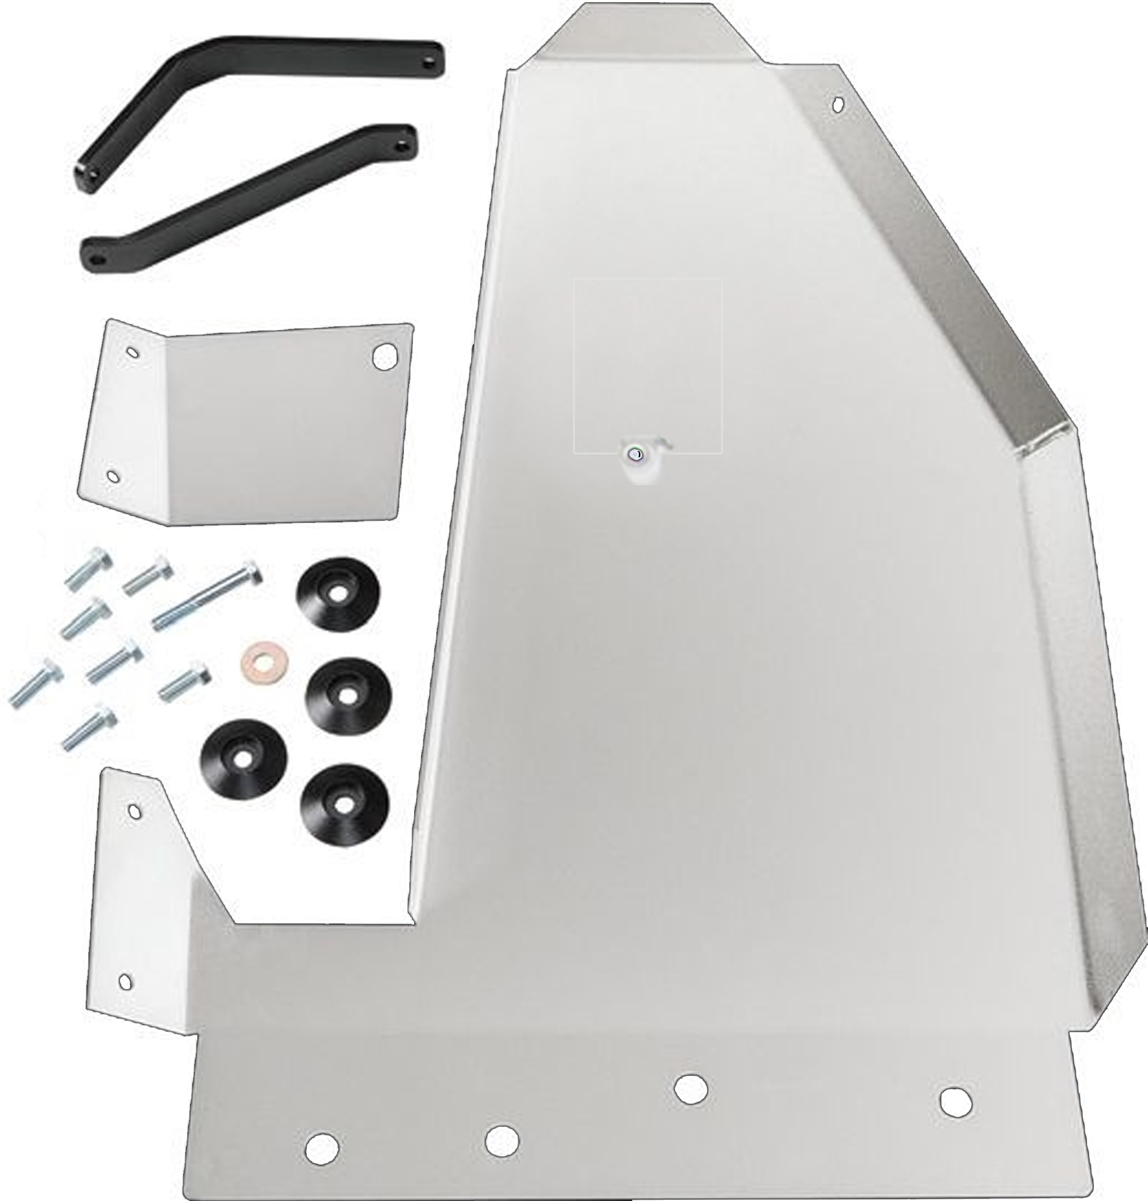 Rock Hard 4x4™ RHX Series Oil Pan / Transmission Skid Plate for Jeep Wrangler JK 2007 - 2018 [RH-6083]